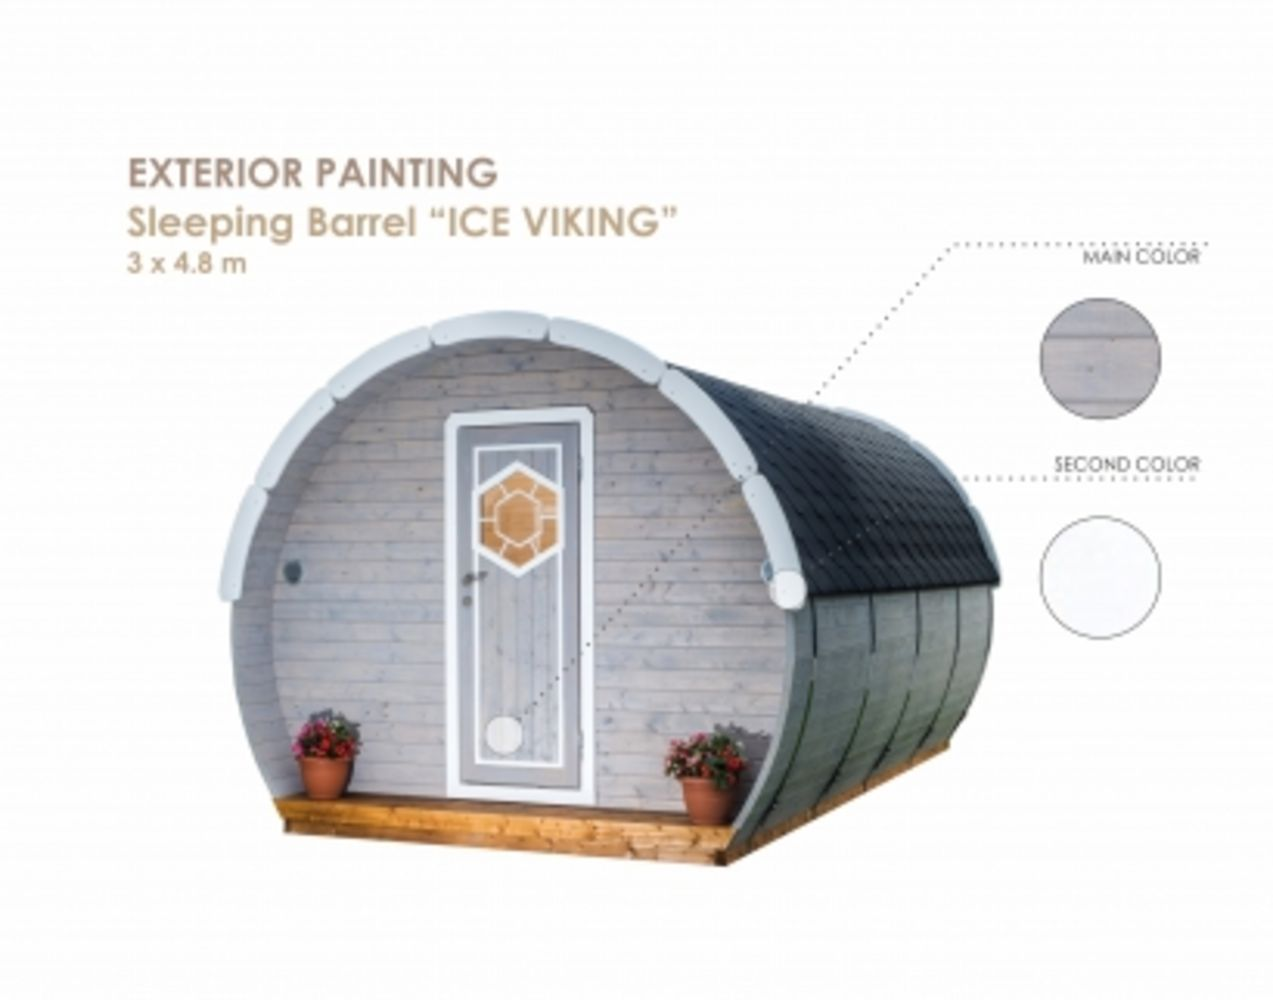 Brand New Scandinavian-Style Garden Buildings & More: Cabins, Cubes, Pods, Barrels, Saunas, Hot Tubs, Garden Furniture